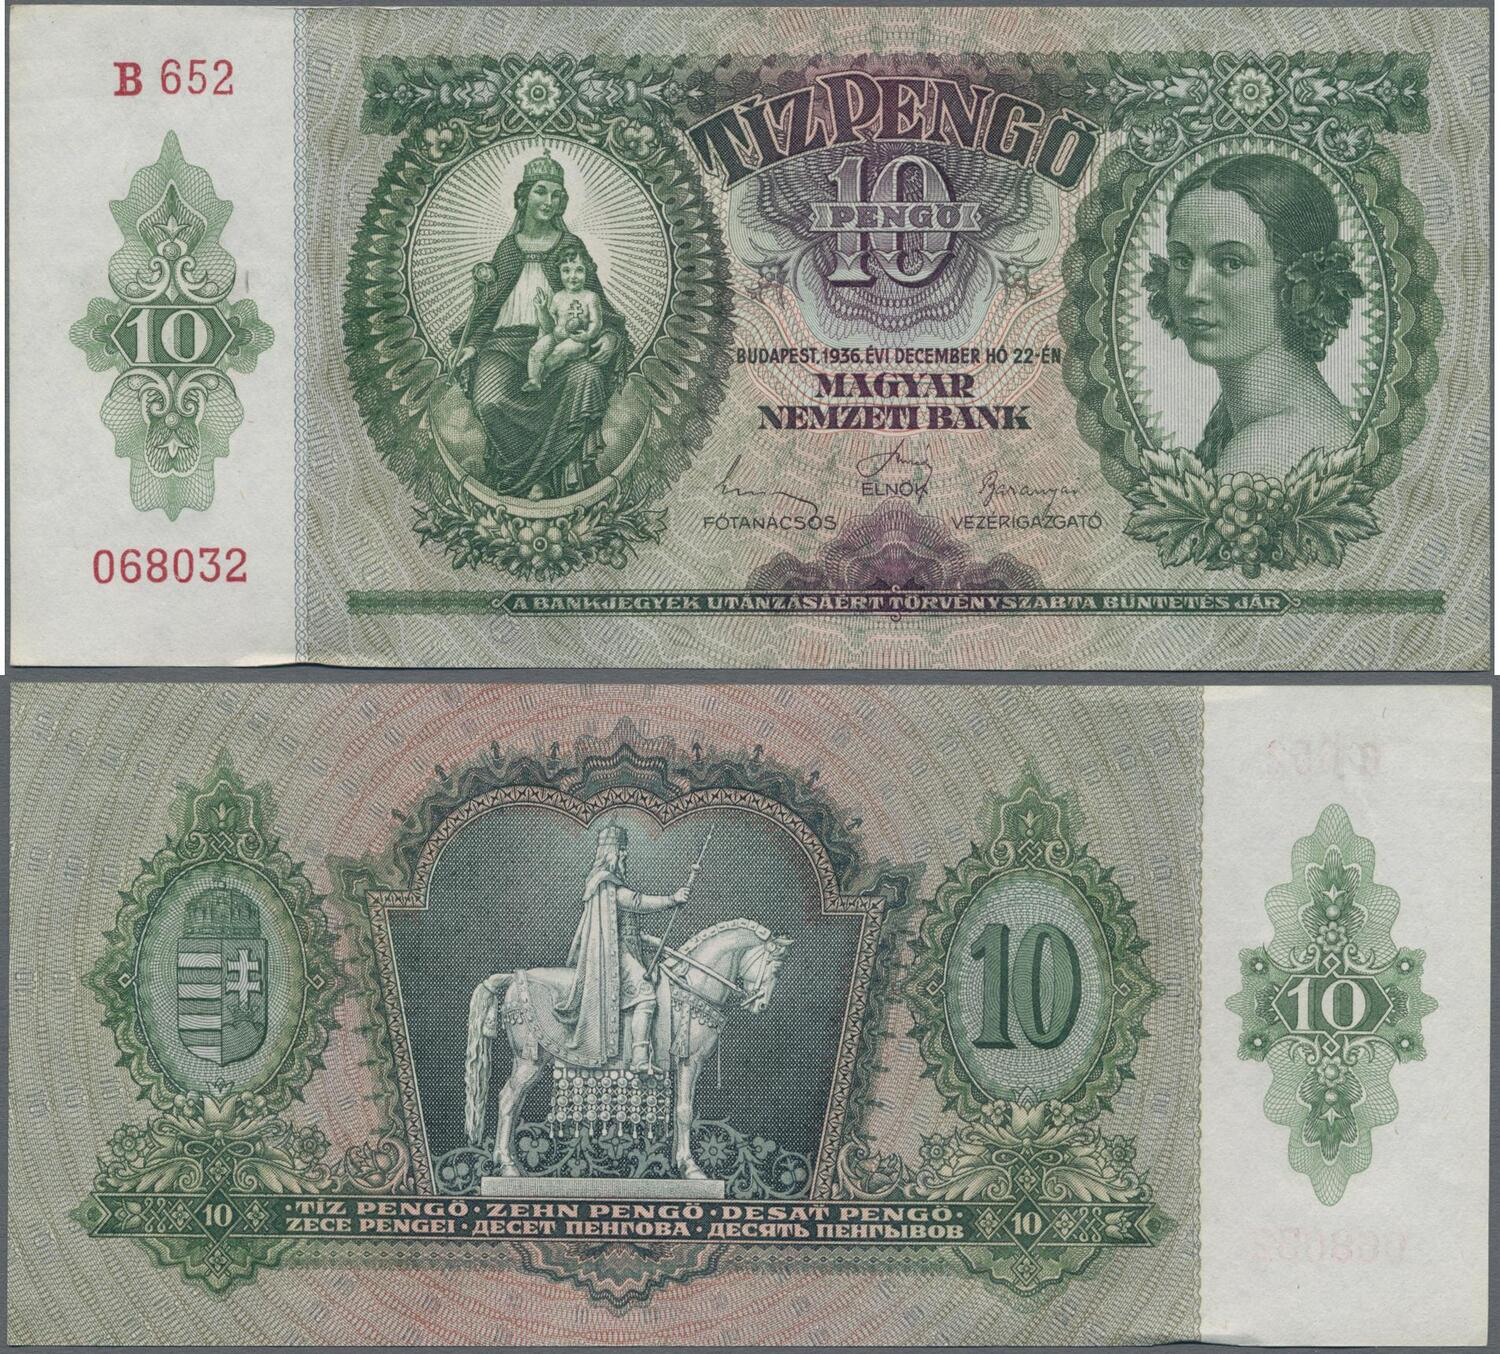 Bosnia /& Herzegovina 100 Dinara Lot 10 PCS 1992 P-13 1//10 Bundle UNC